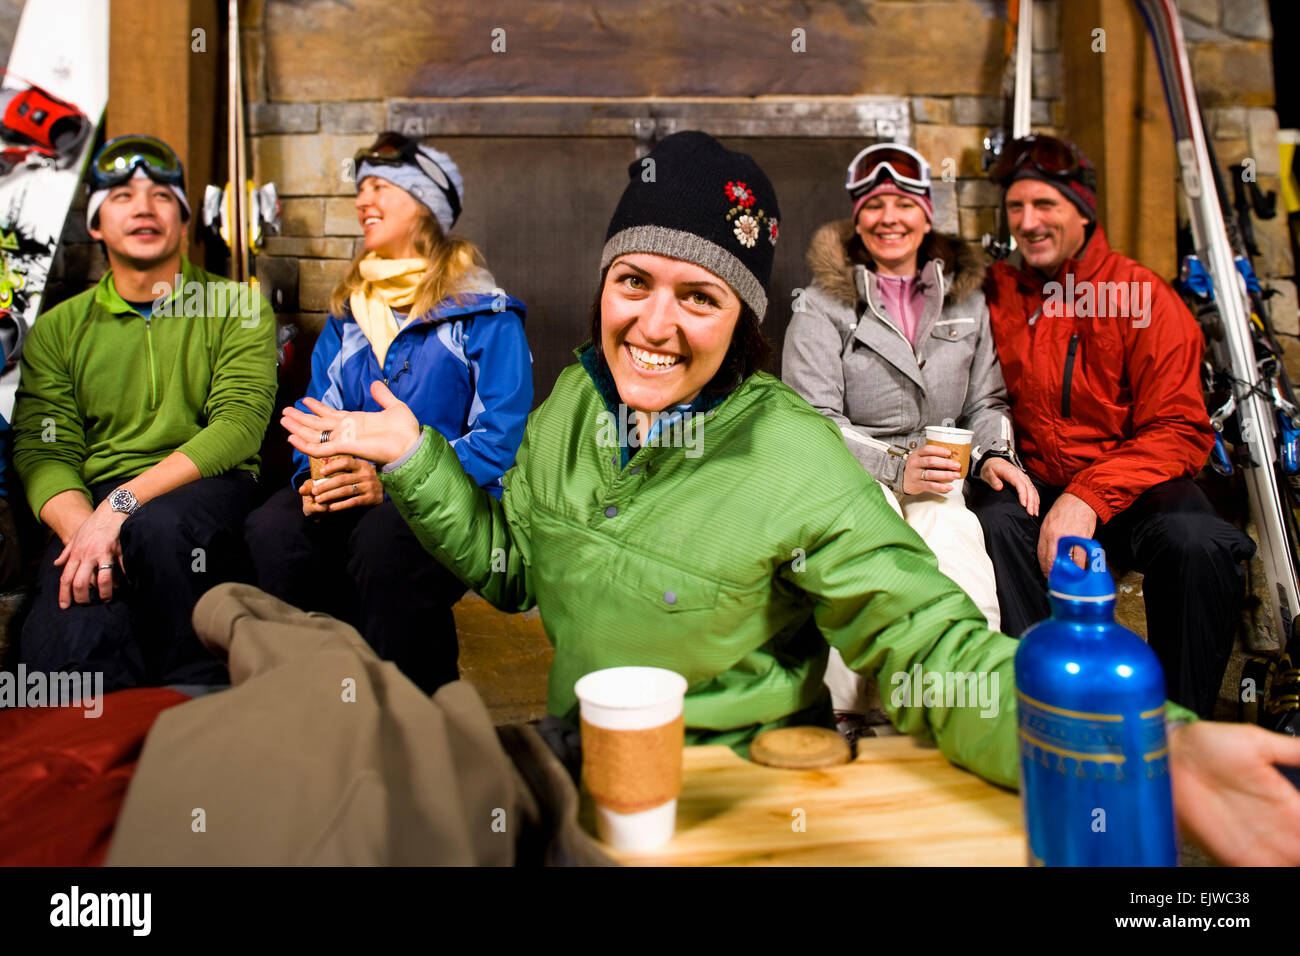 USA, Montana, Whitefish, Group of skiers hanging out at fireplace - Stock Image